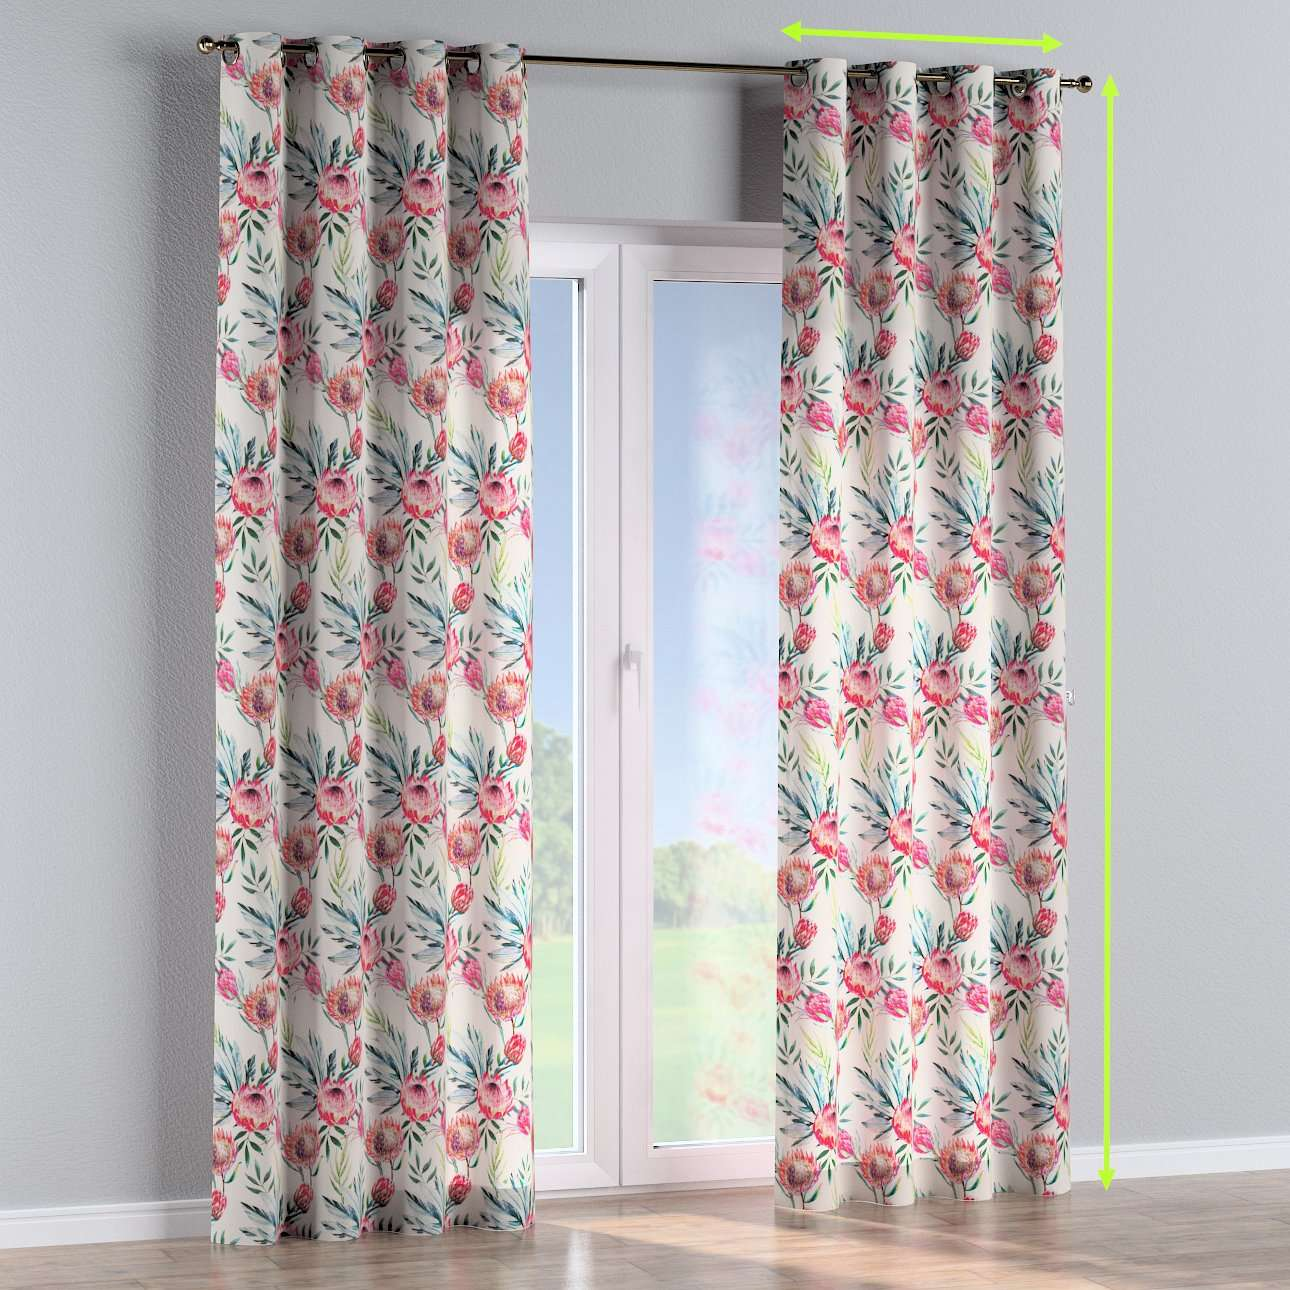 Eyelet lined curtains in collection New Art, fabric: 141-59